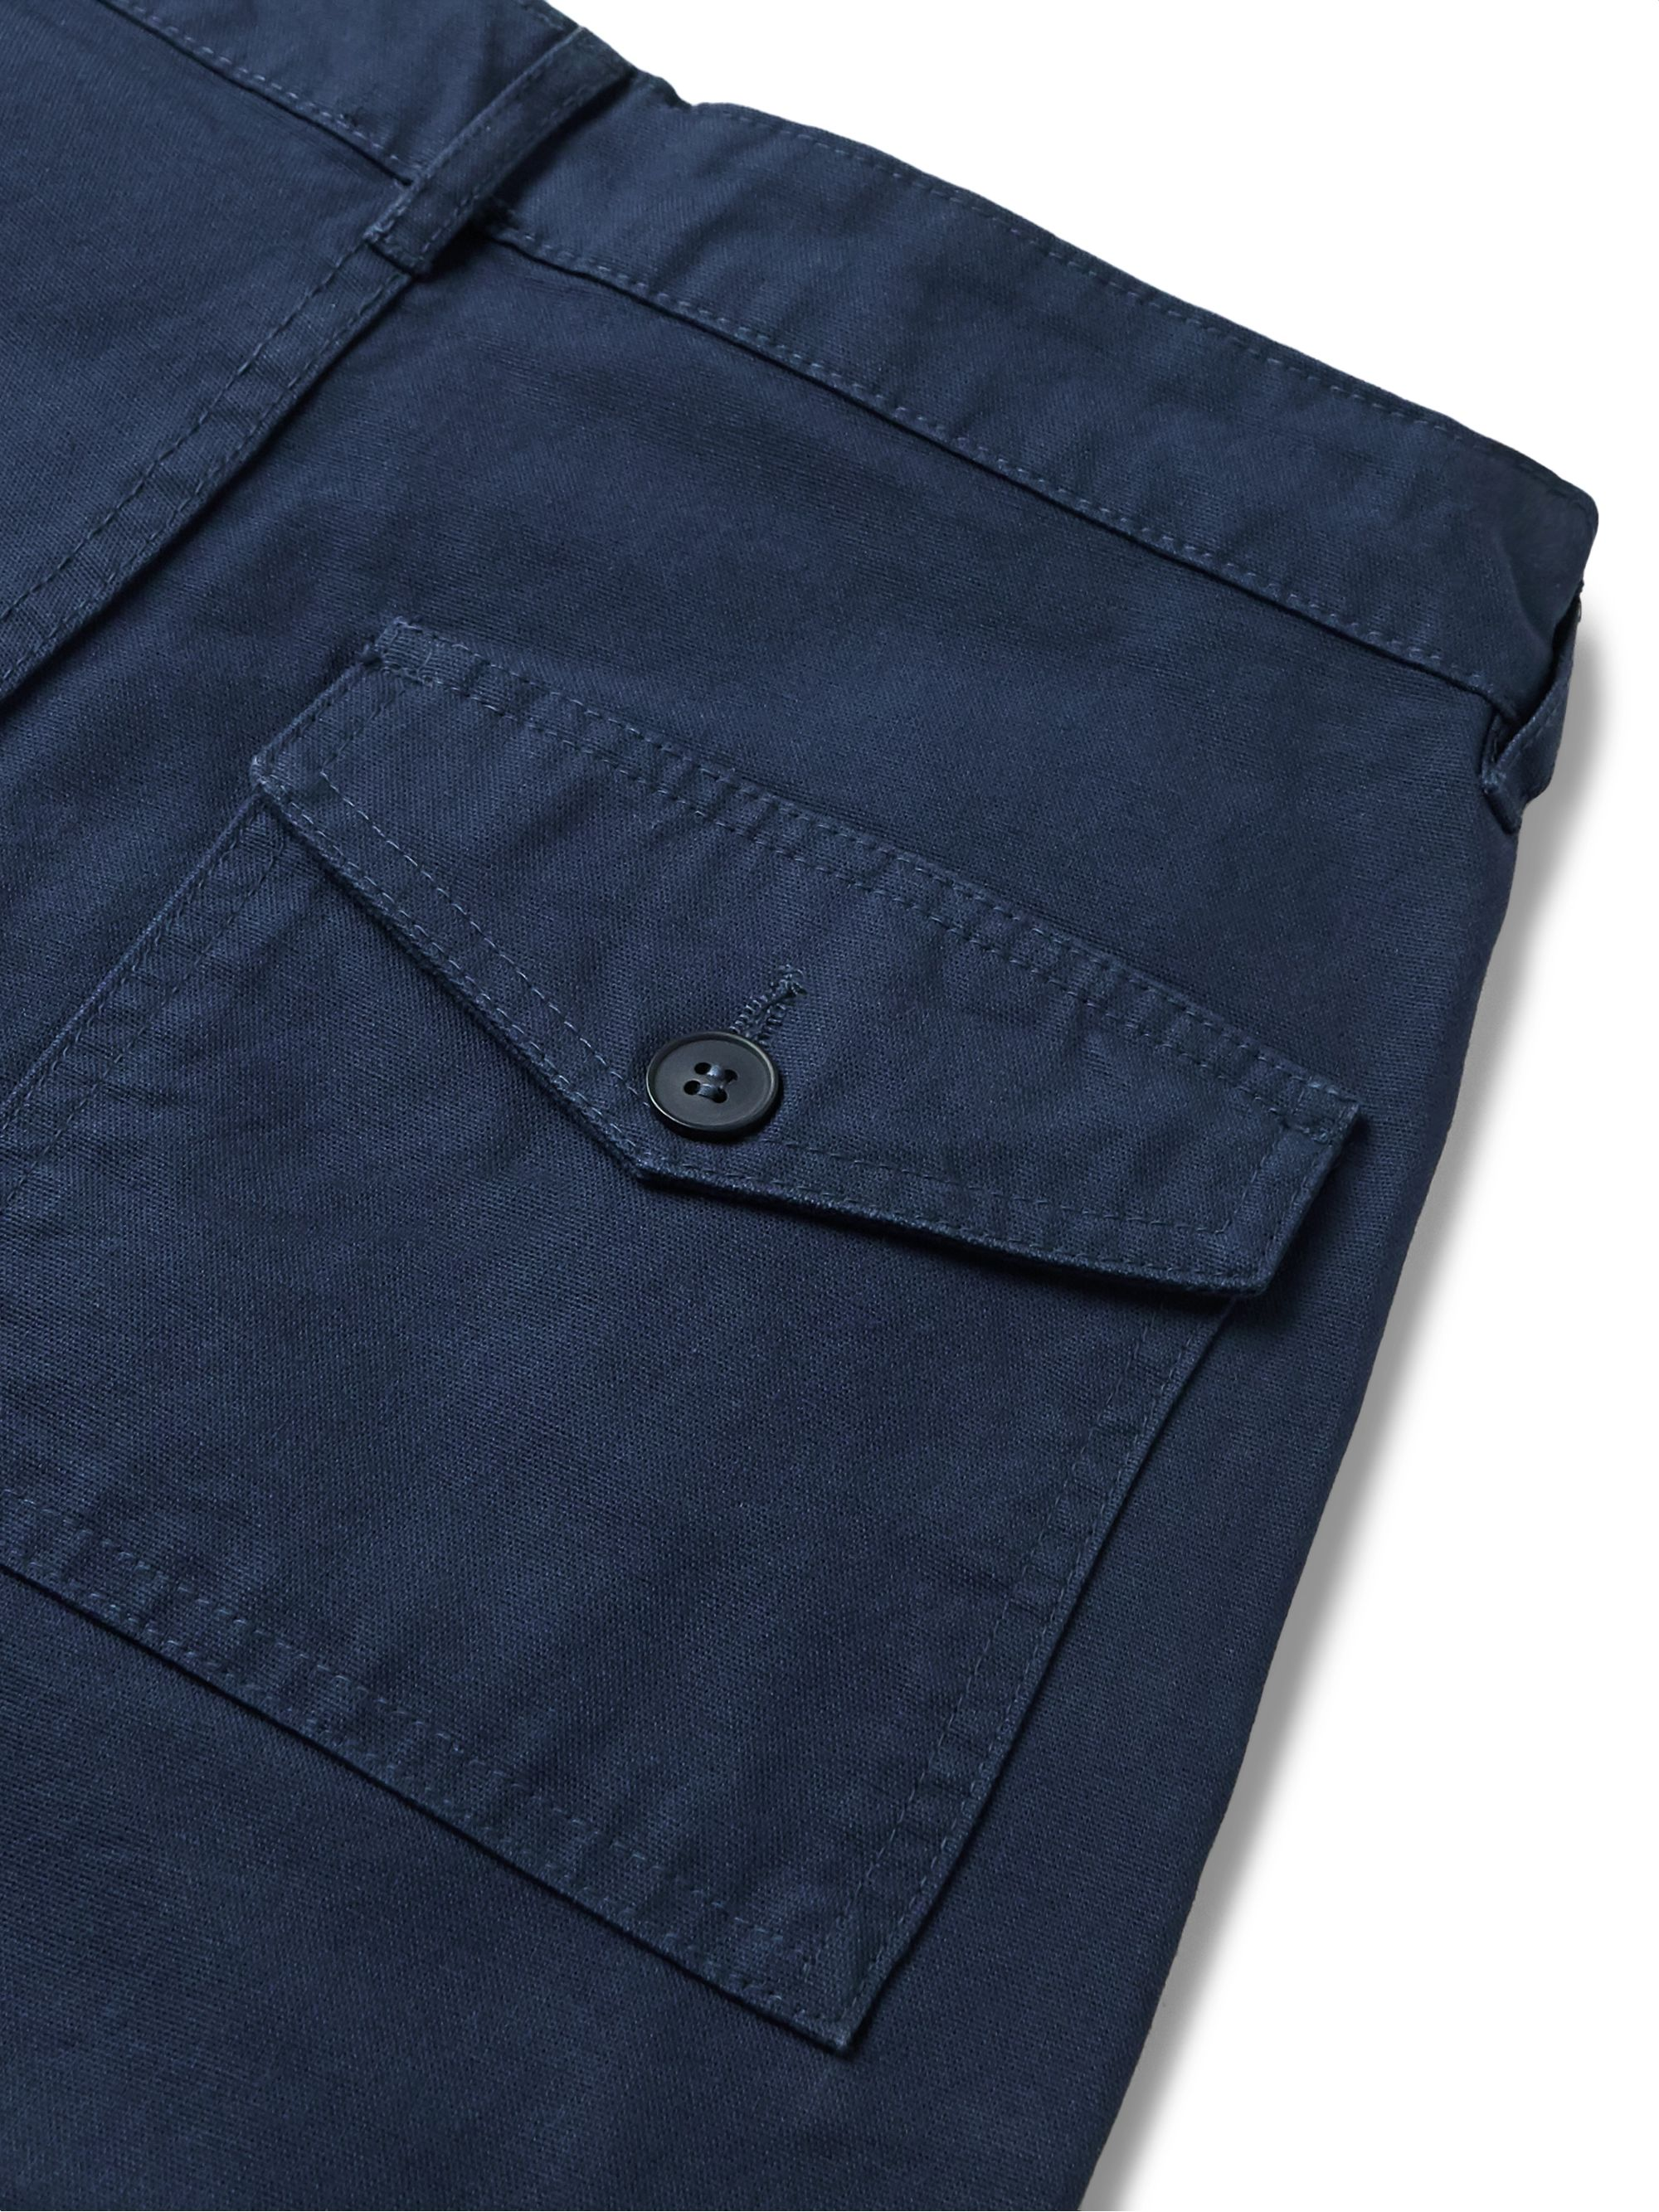 Armor Lux Navy Cotton Trousers